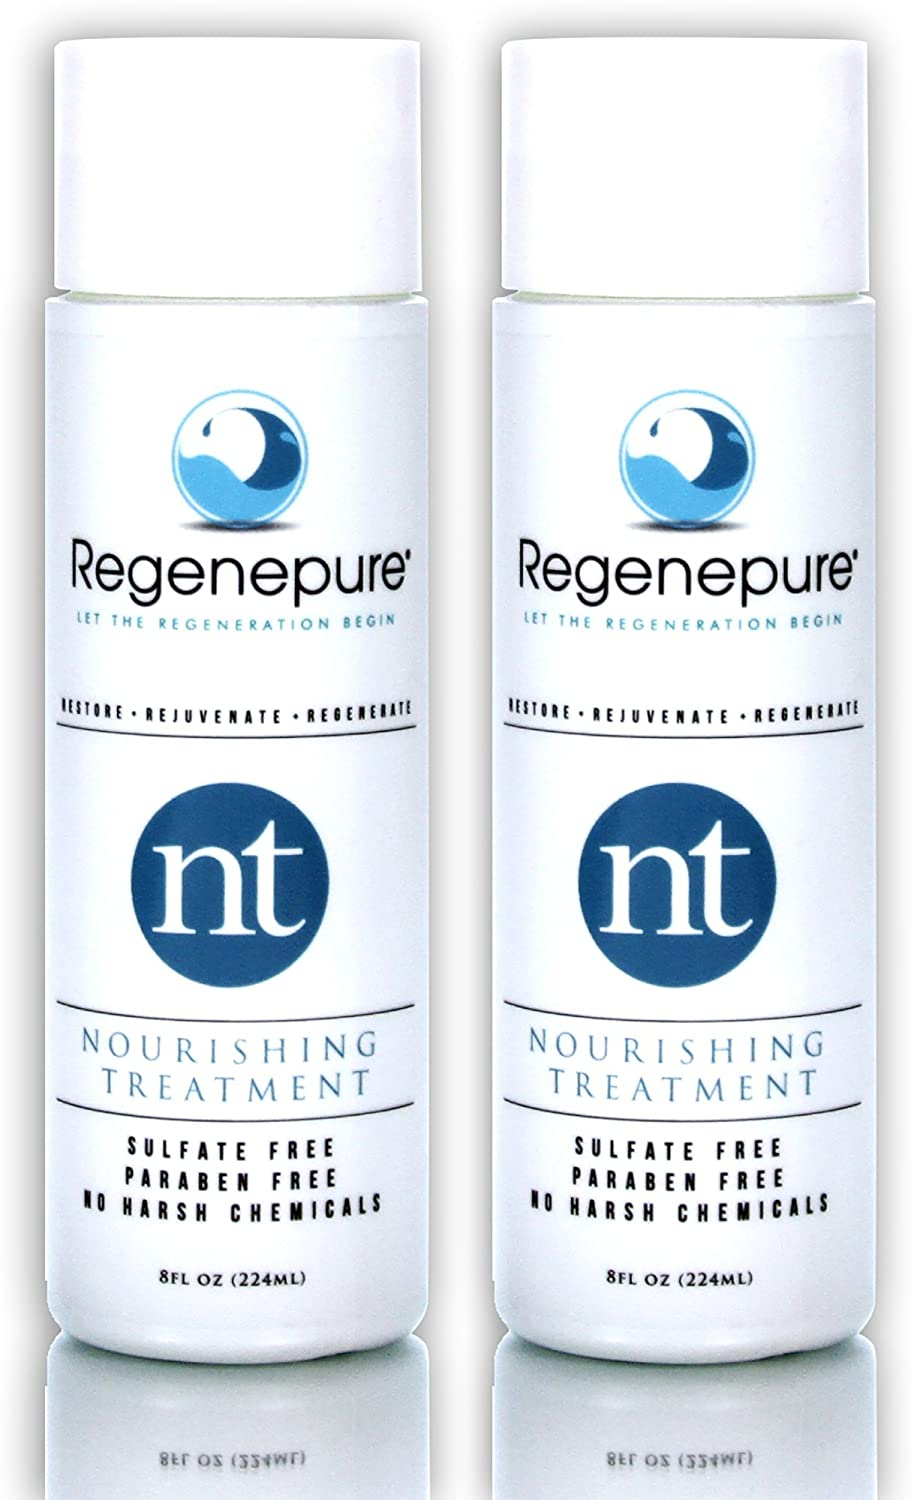 REGENEPURE - NT Shampoo, Nourishing Treatment For Thickening and Strengthening Hair, 8 Ounces (2 Pack)